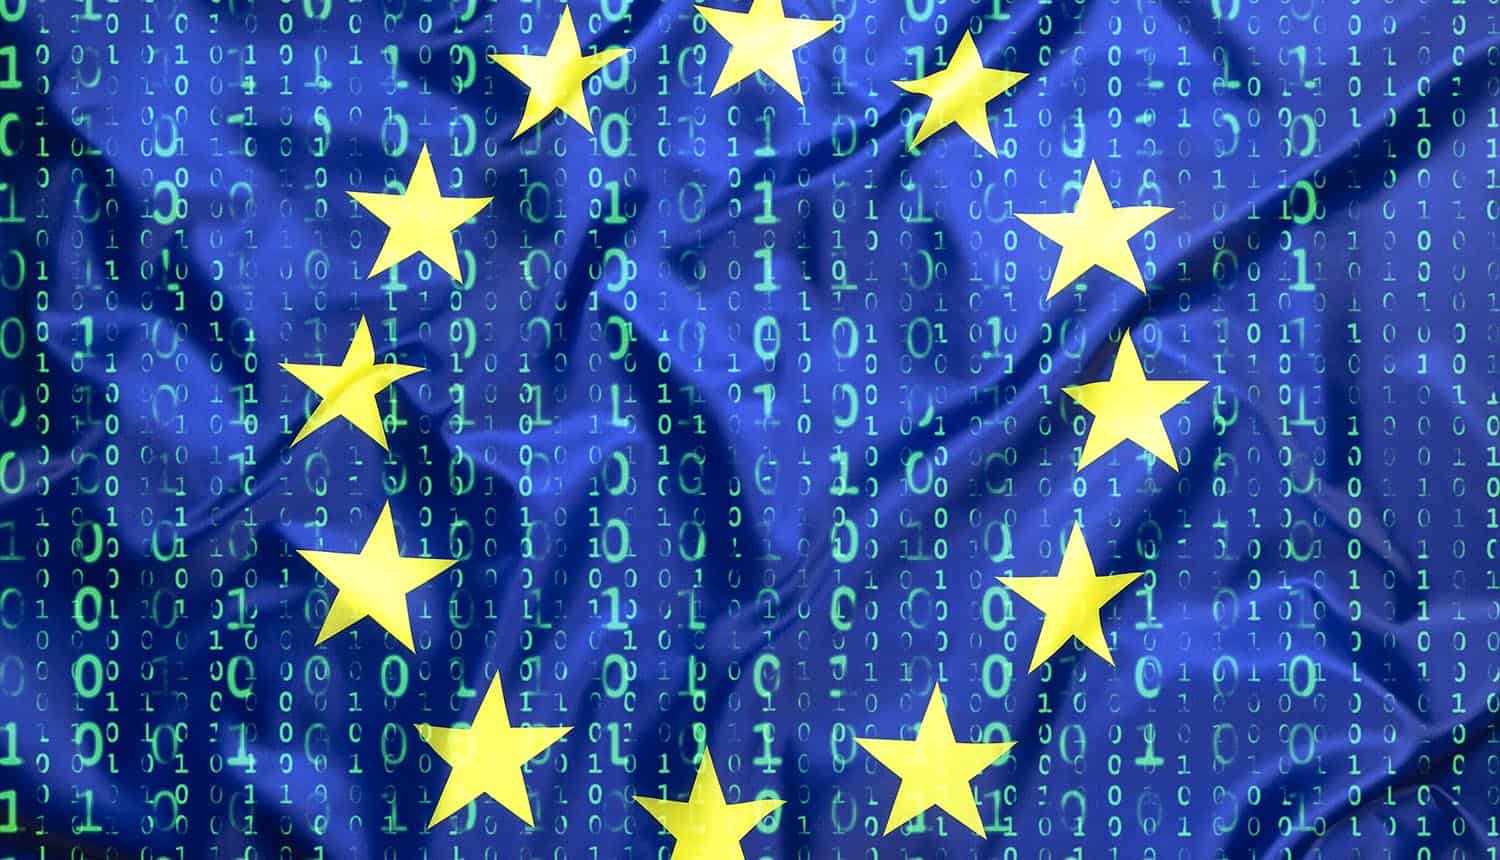 E.U. flag with binary code background showing the new European cloud that could provide services which comply with data protection laws